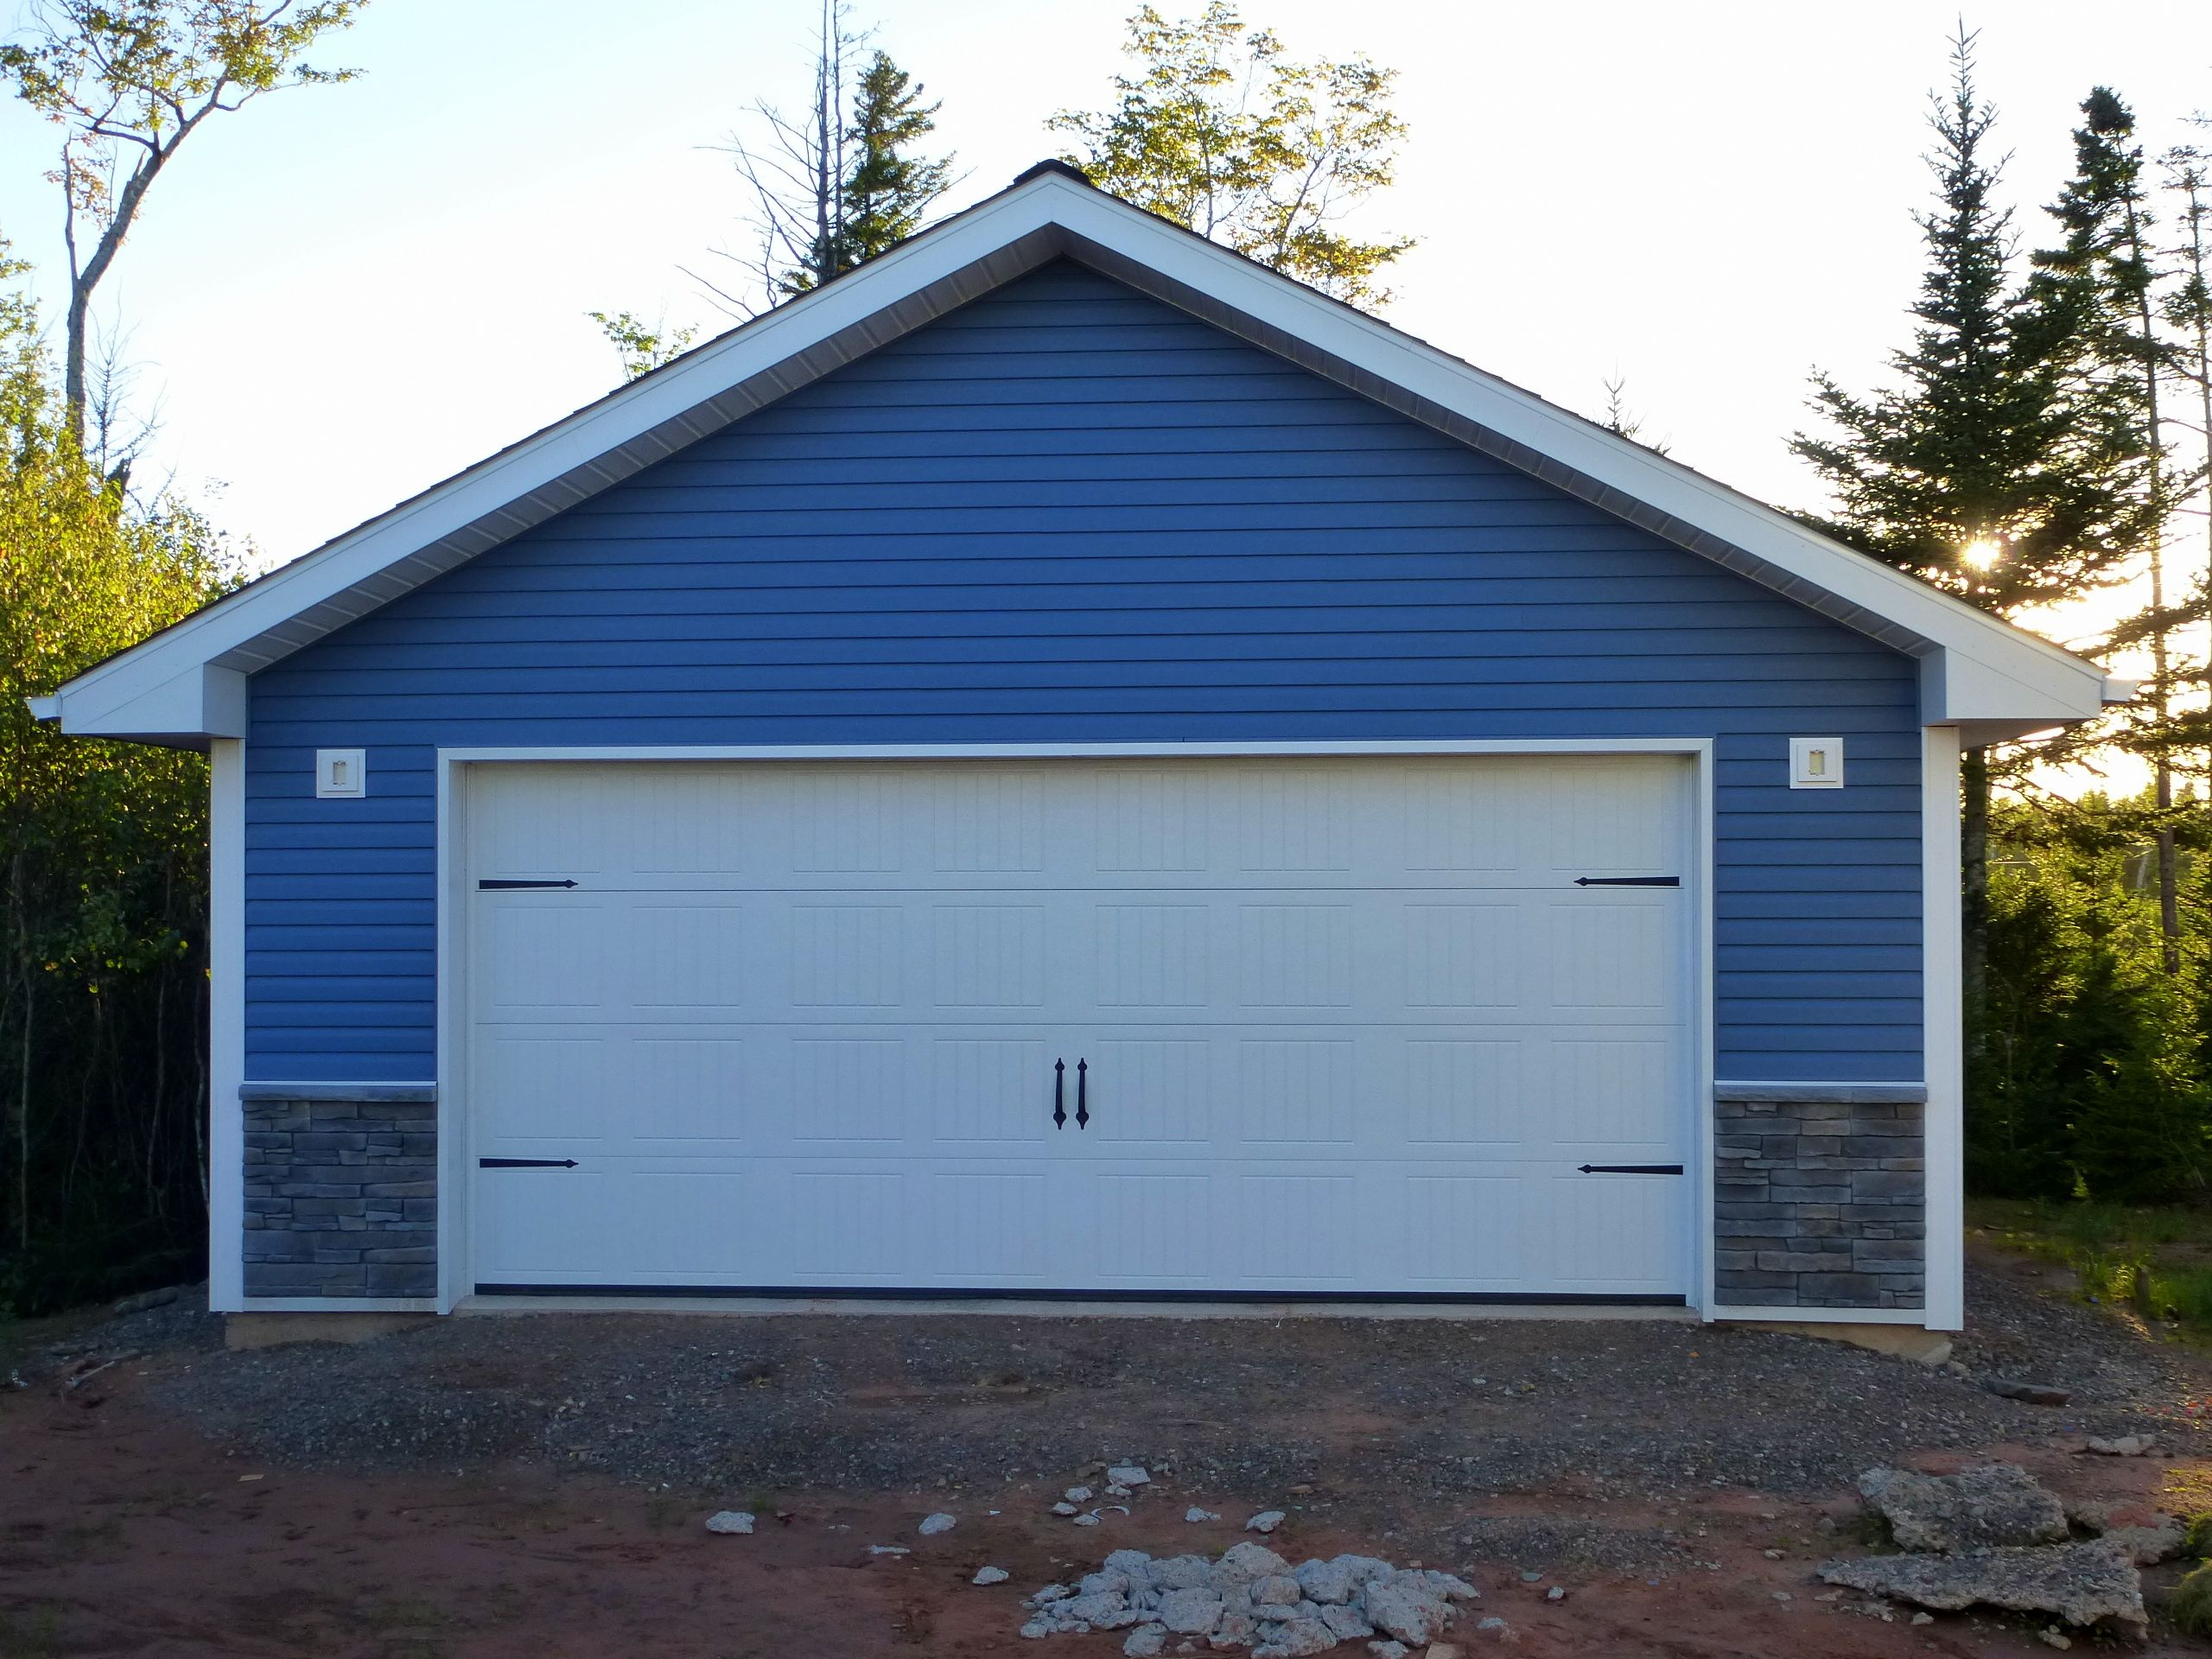 New garage construction using kaycan vinyl siding for New garage